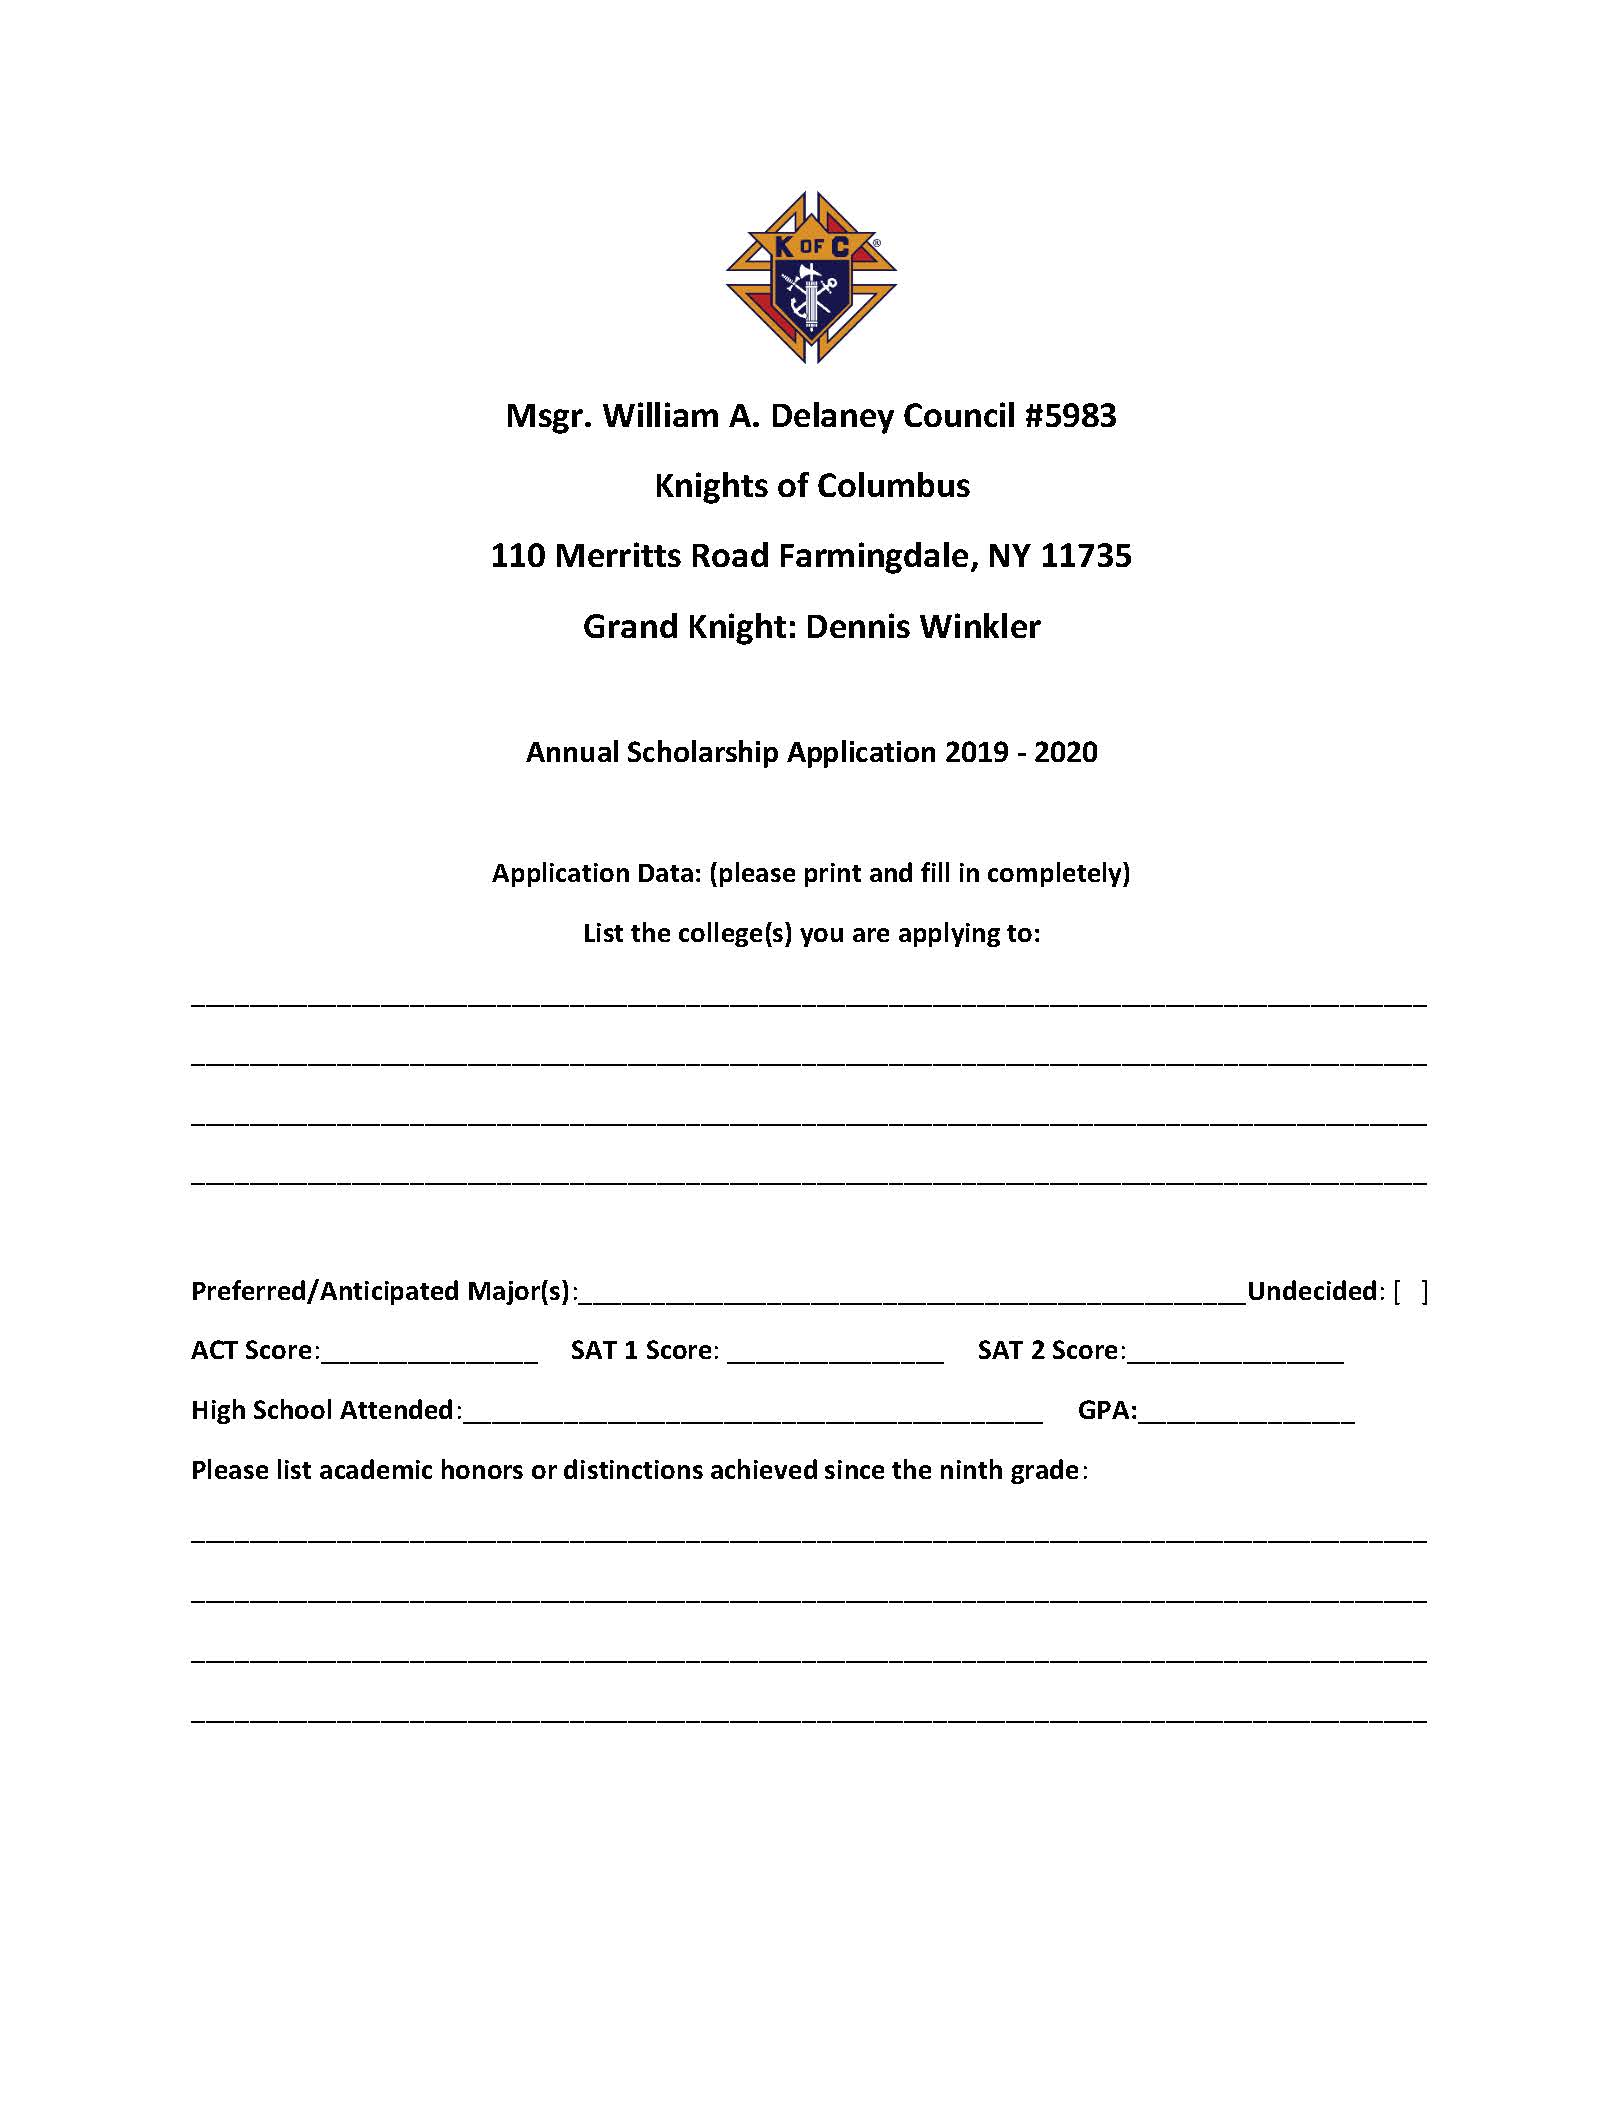 Delaney Scholarship Application 2019 - 2020_Page_1